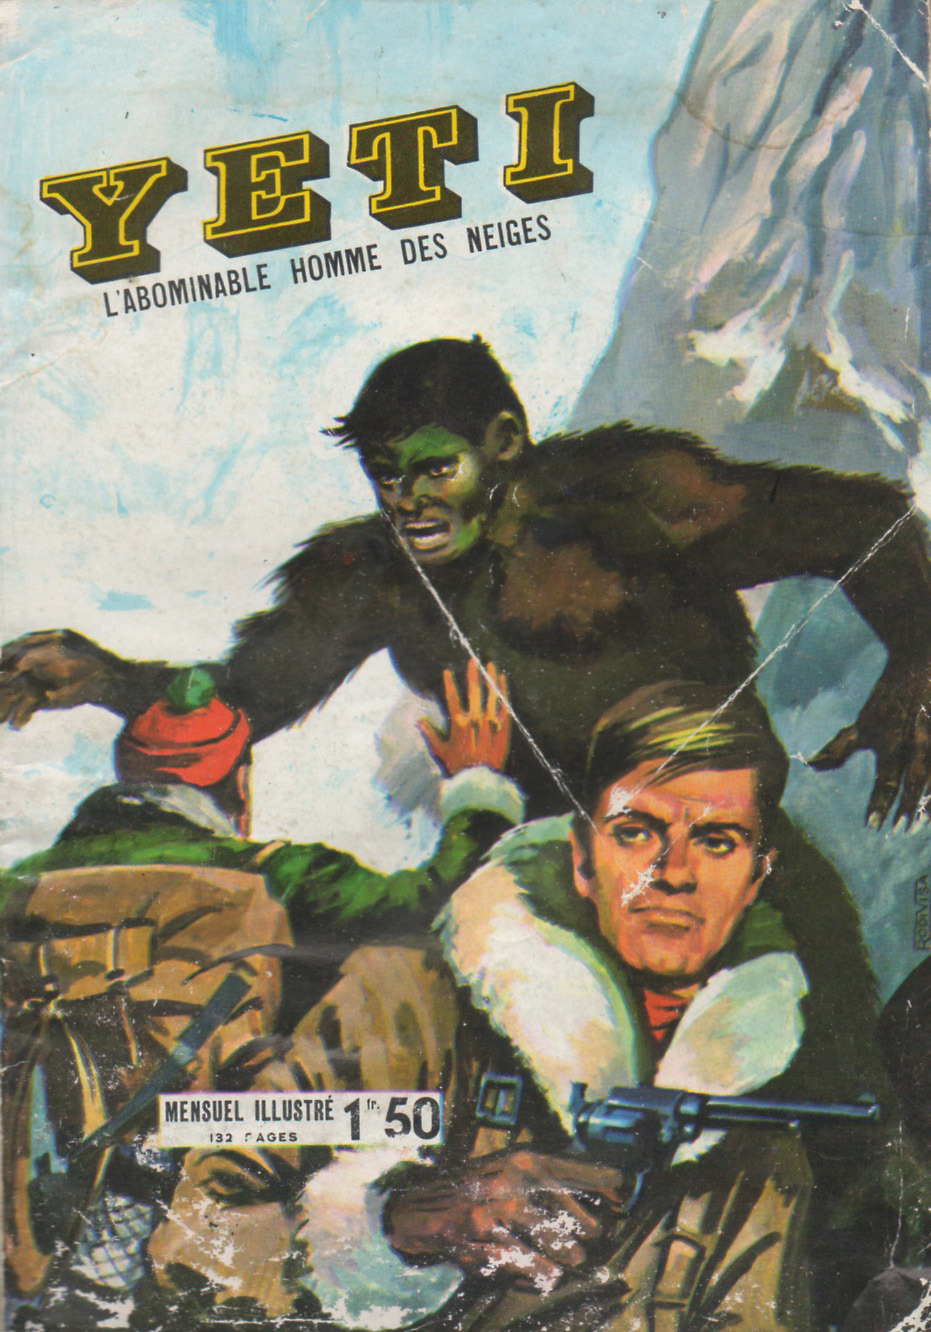 Yeti: L'Abominable Homme des NeigesEditions de Lutece N°1, 1968 via Deadlicious